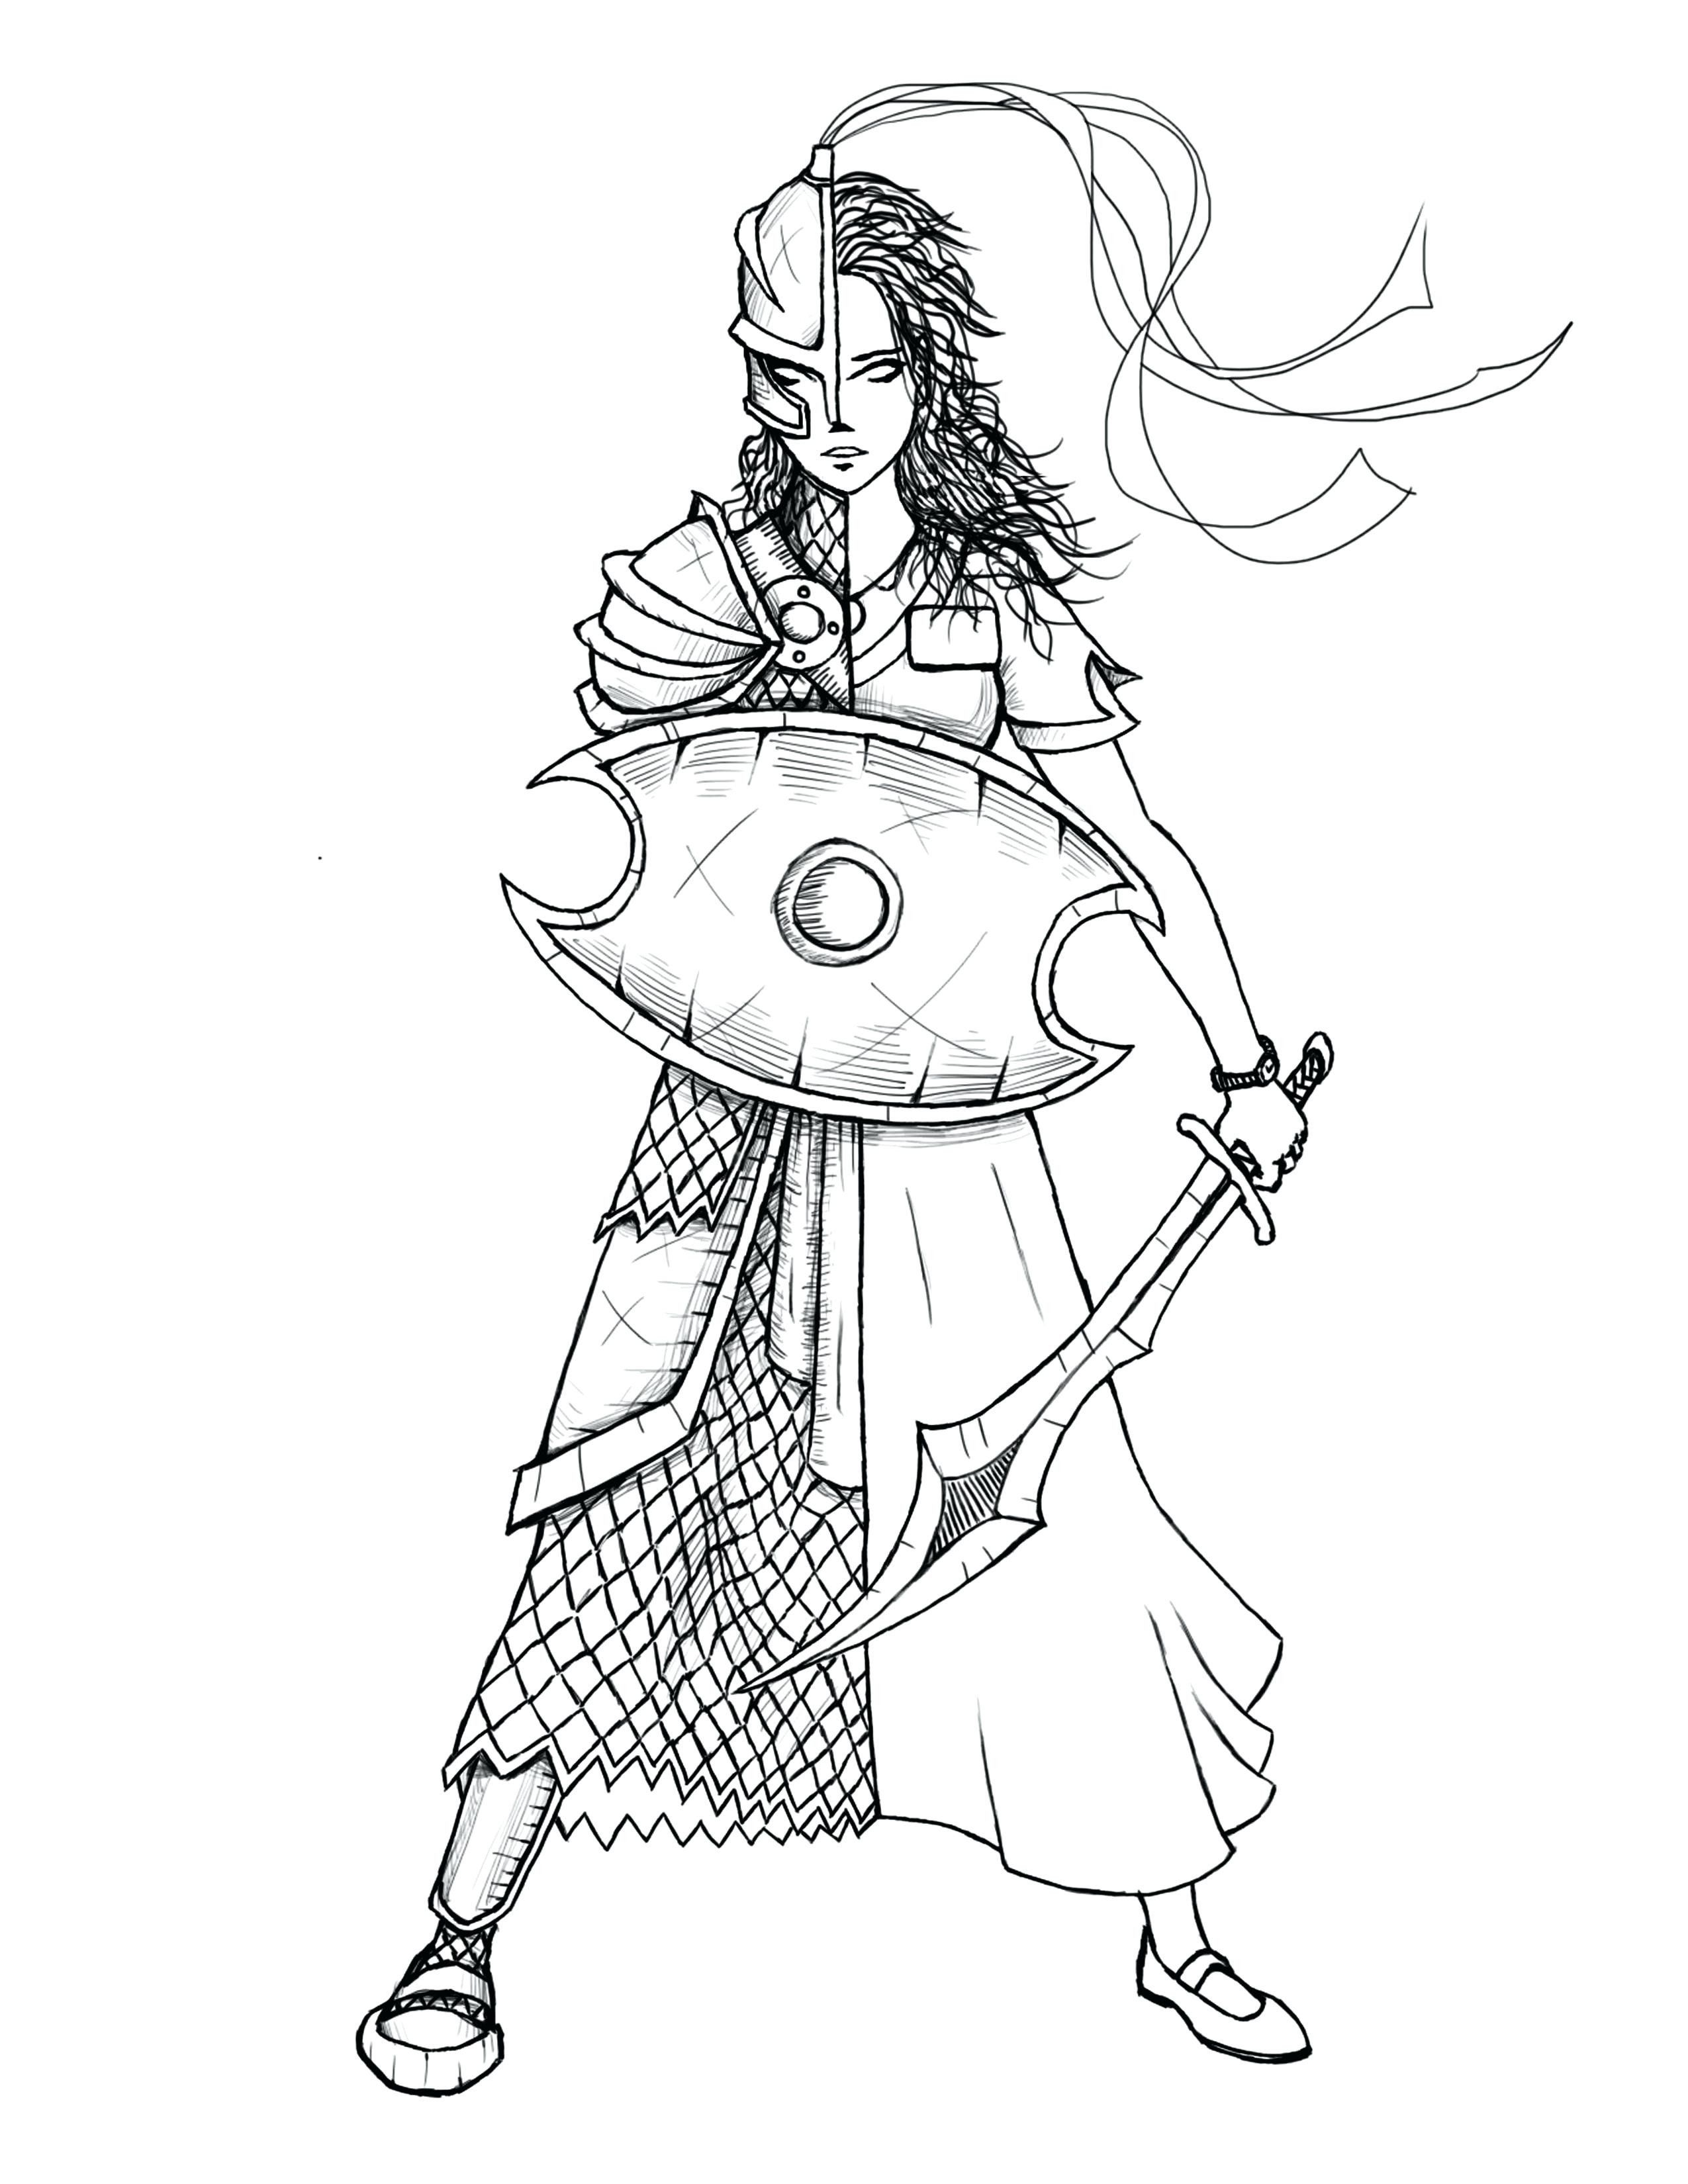 Armor Of God Coloring Pages Fresh Armor Coloring Page Maydaysheet Armor Of God Princess Coloring Pages Steampunk Animals